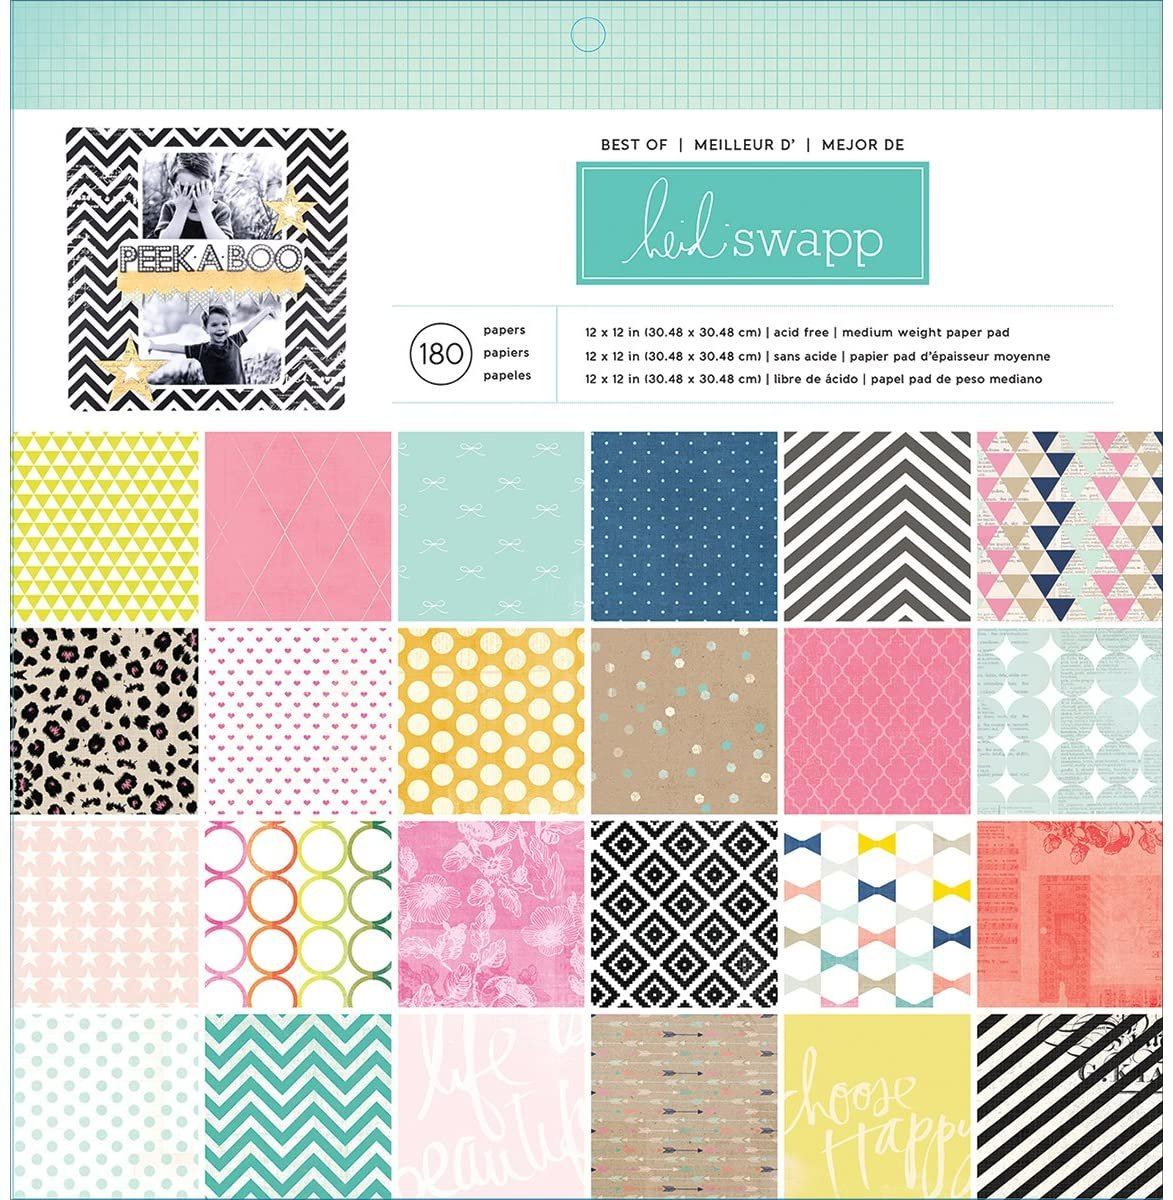 SPECIAL OFFER! Heidi Swapp's Favorites Paper Tablet